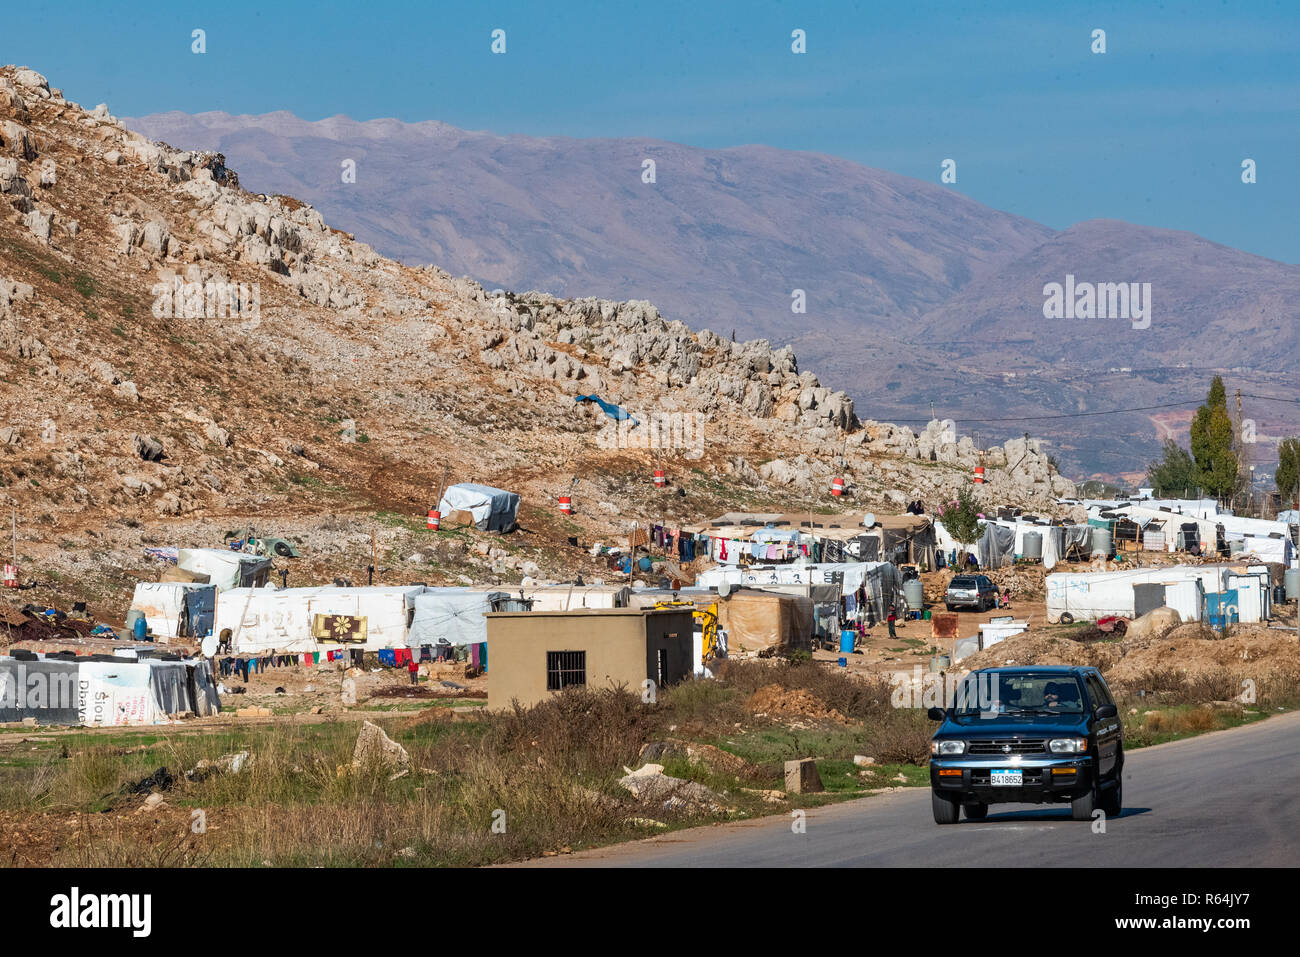 Palestinian refugee camp, Bekaa Valley, Lebanon - Stock Image